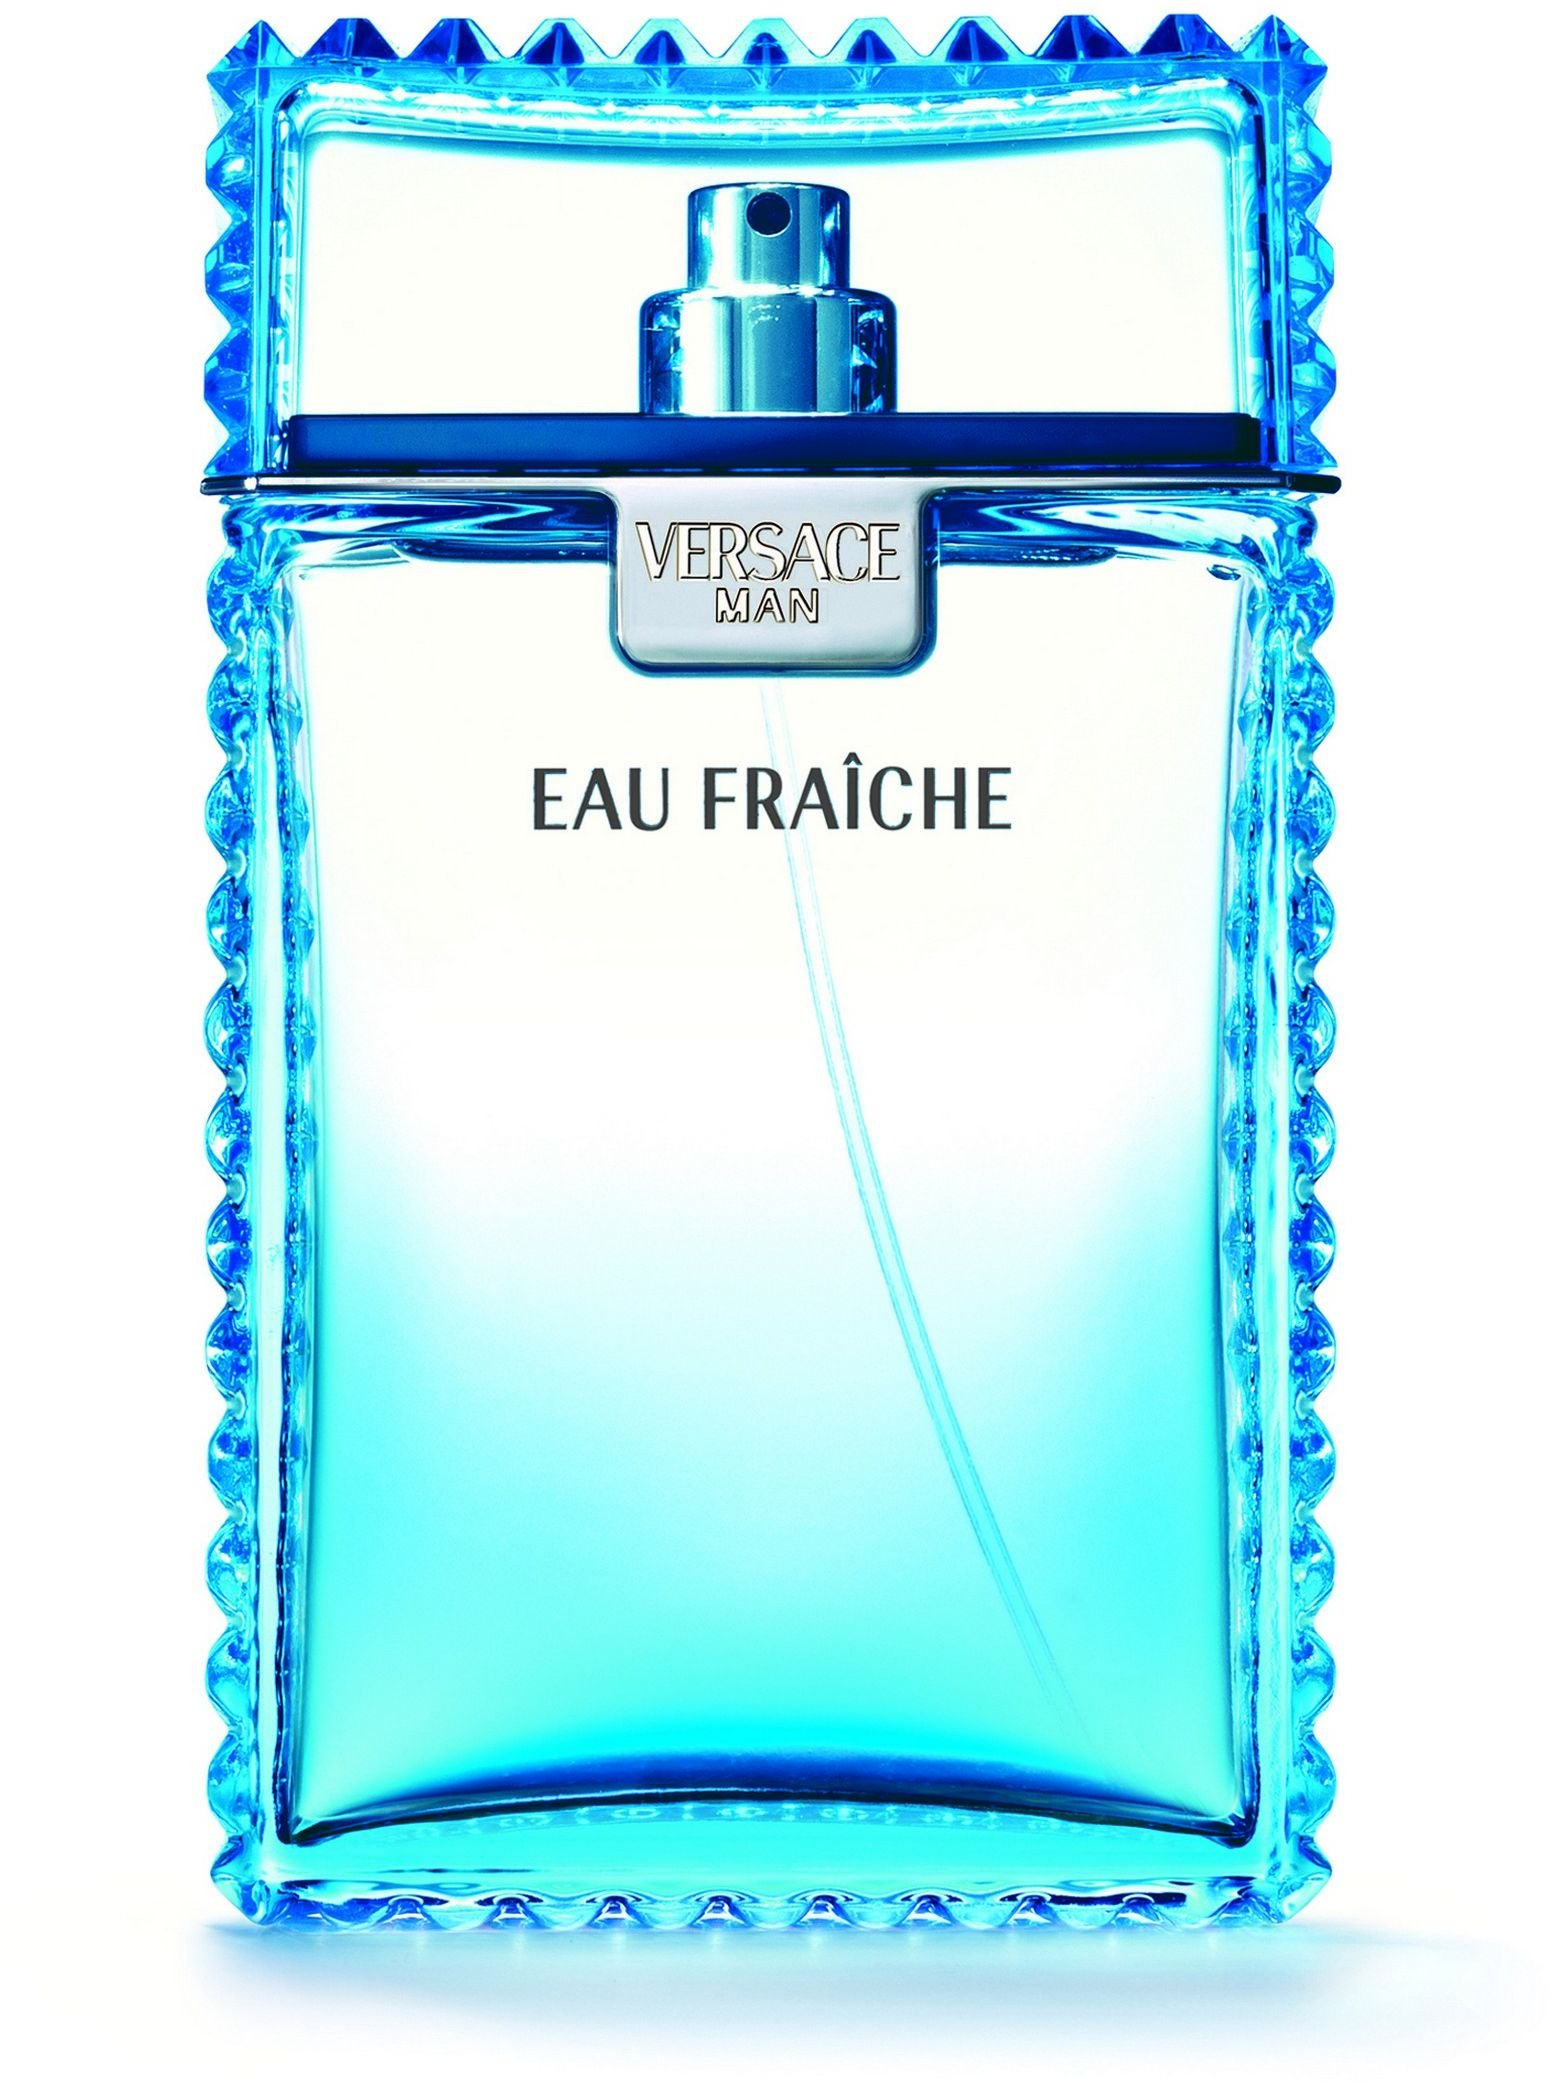 Man Eau Fraiche Eau De Toilette Spray Men by Versace, 6.7 Ounce